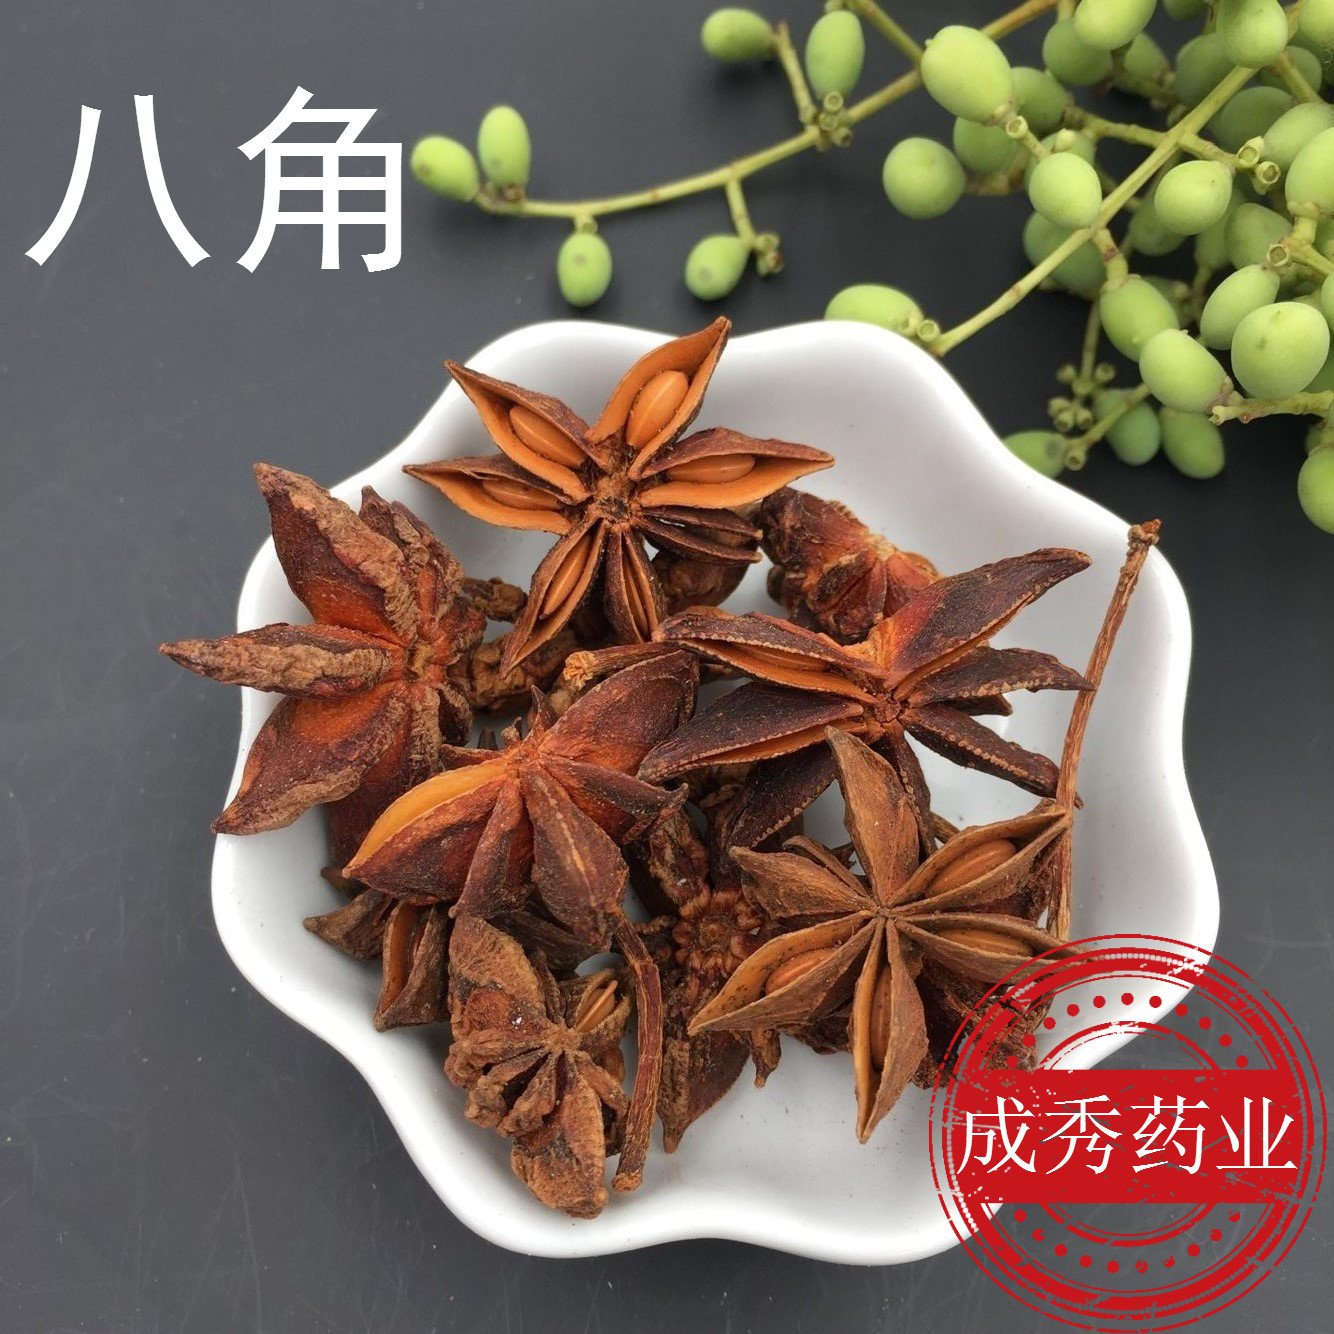 Chinese herbal medicine, star anise, 500g, anise, anise, spices, cooking spices, spices by Guangxi Paoyi Jiancai LTD (Image #1)